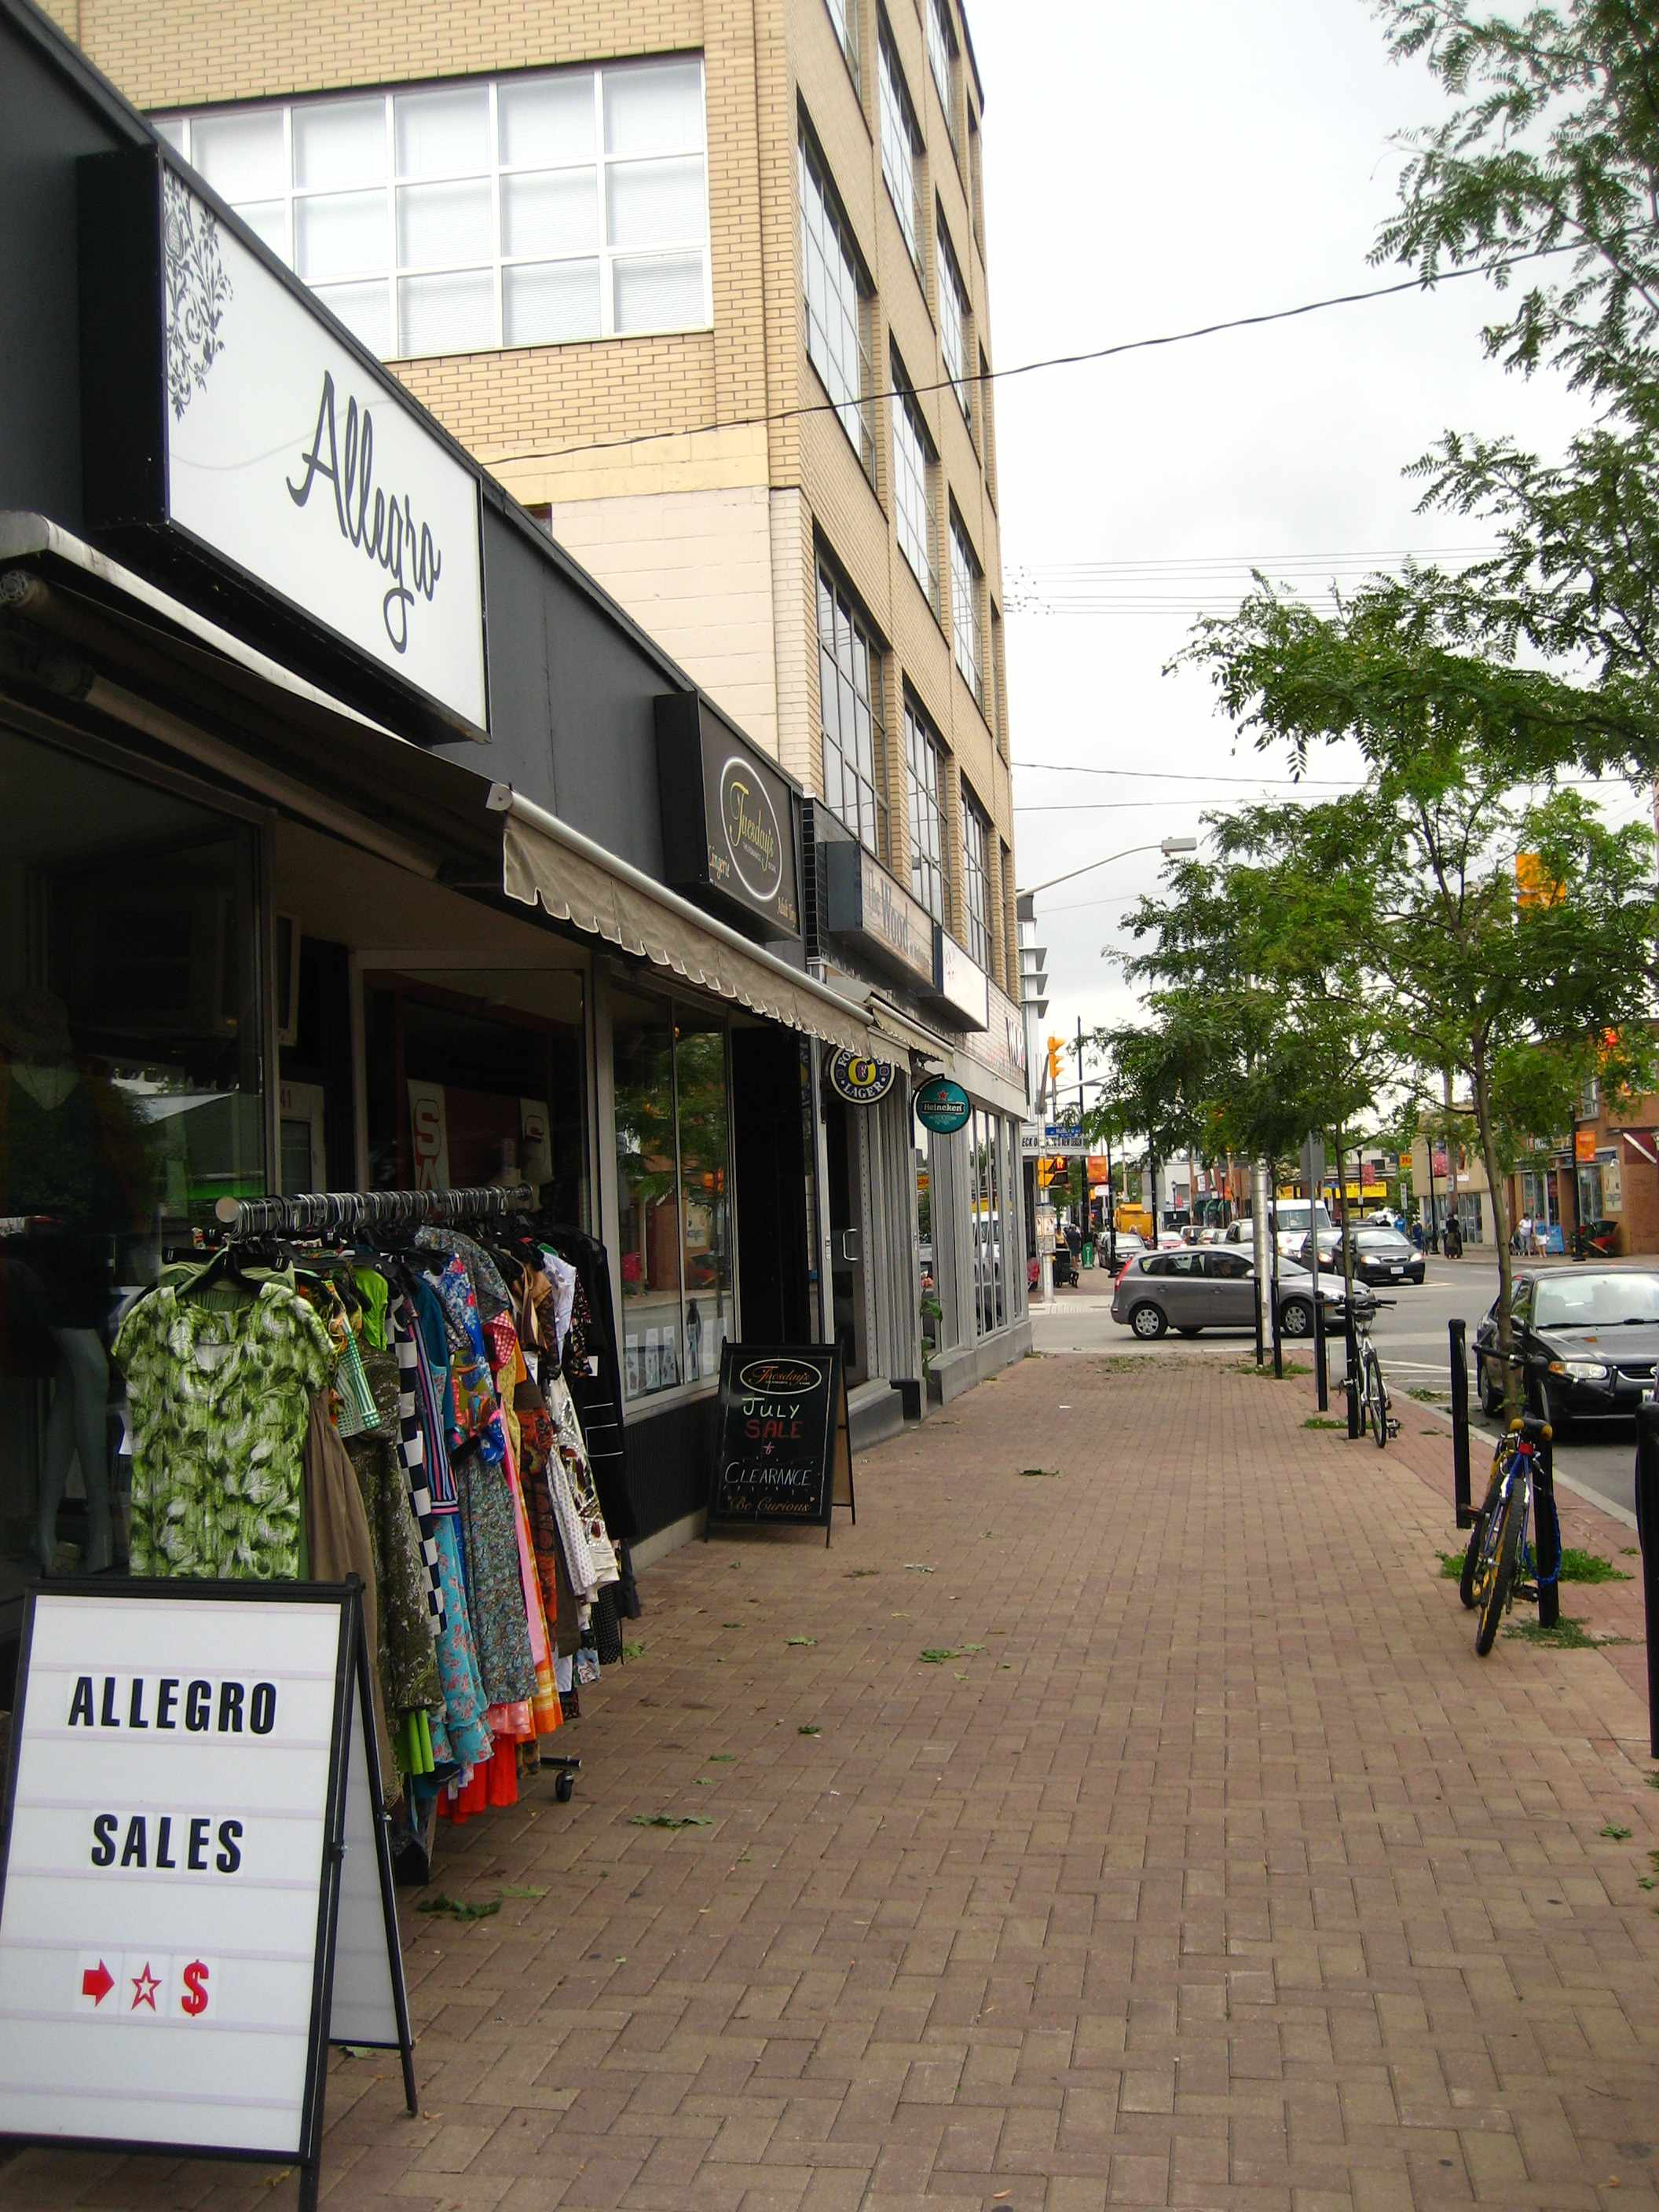 SHOP TALK: Check out Allegro's Wellington West location for summer dresses